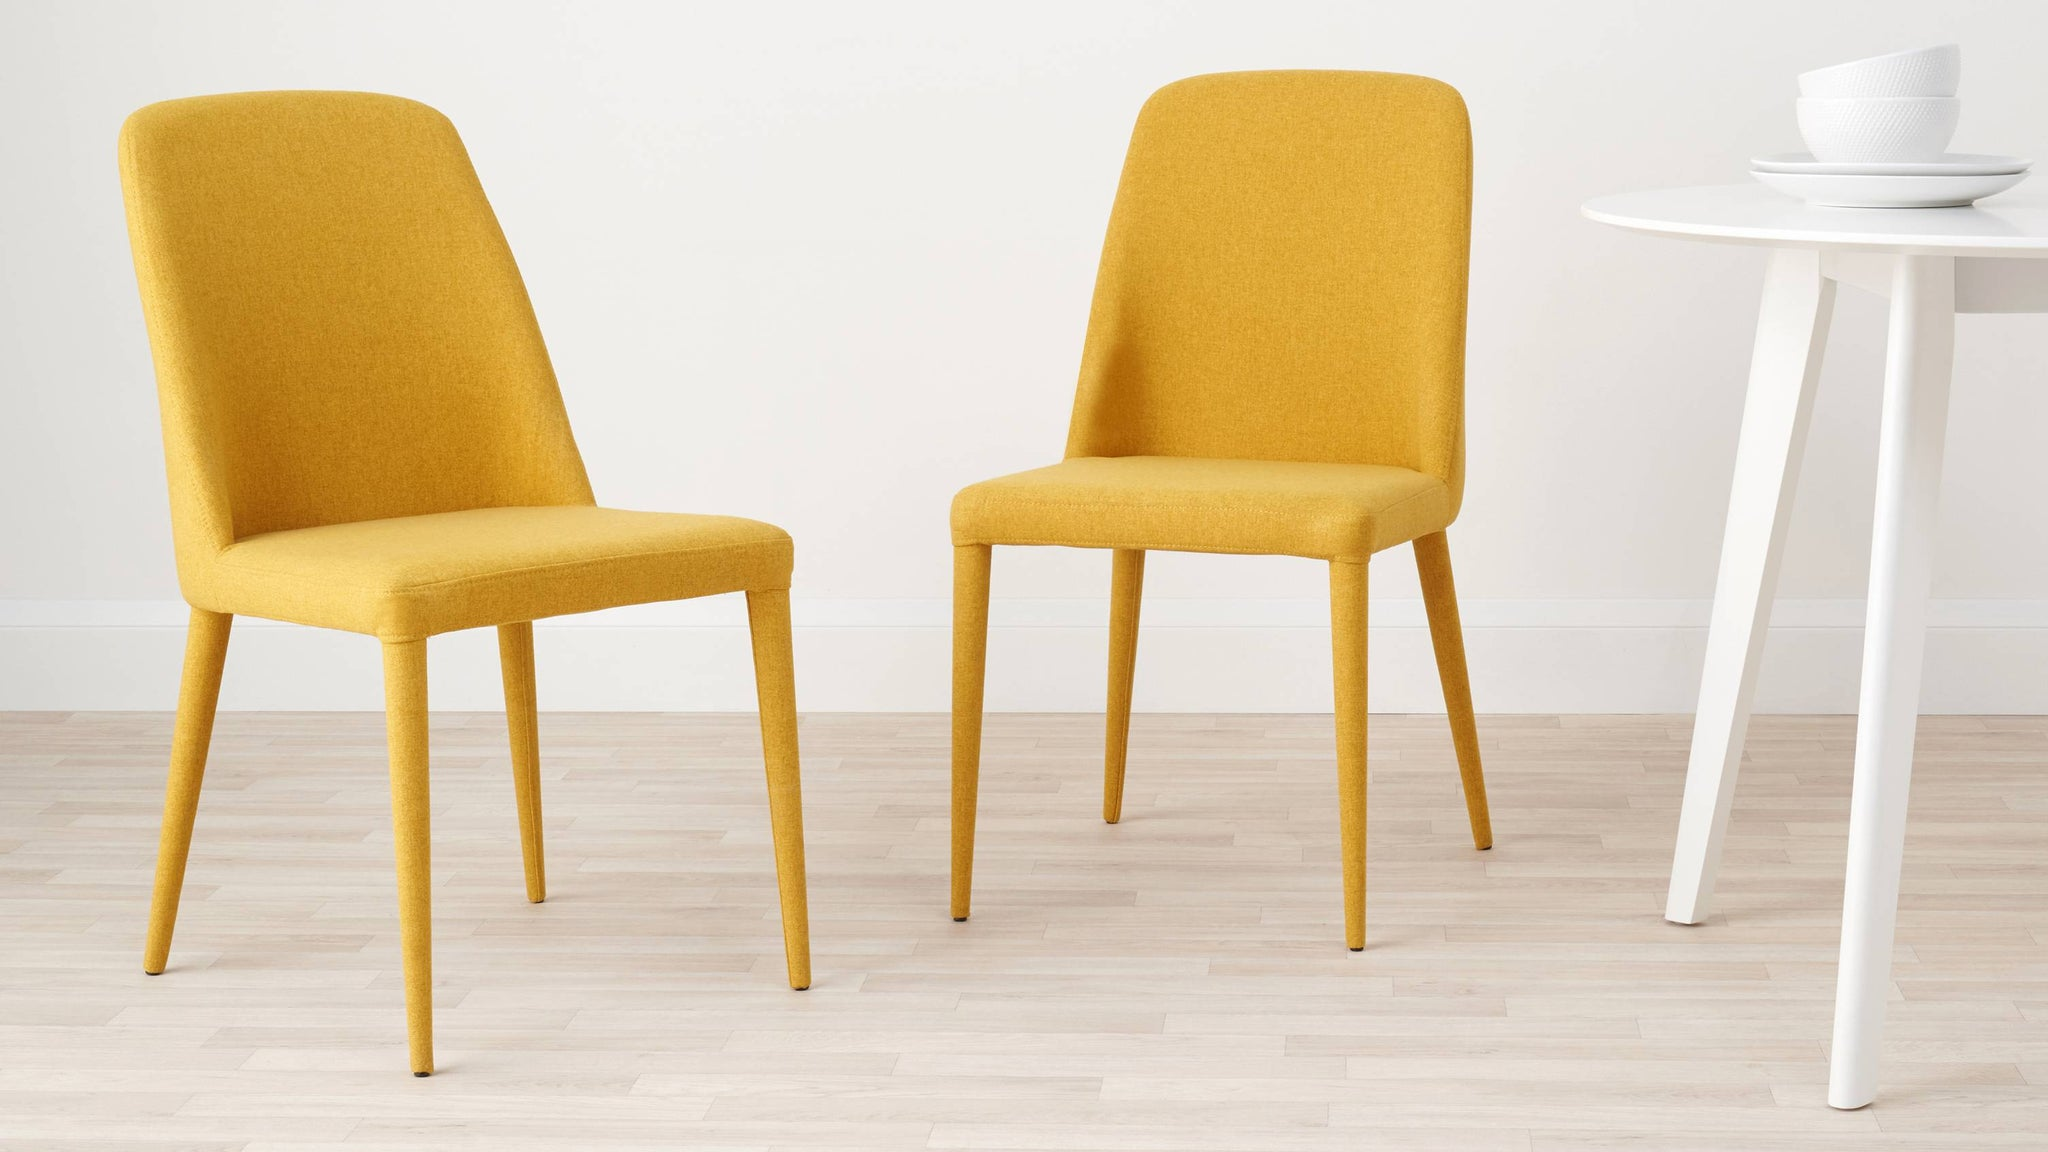 Mustard yellow fabric dining chair